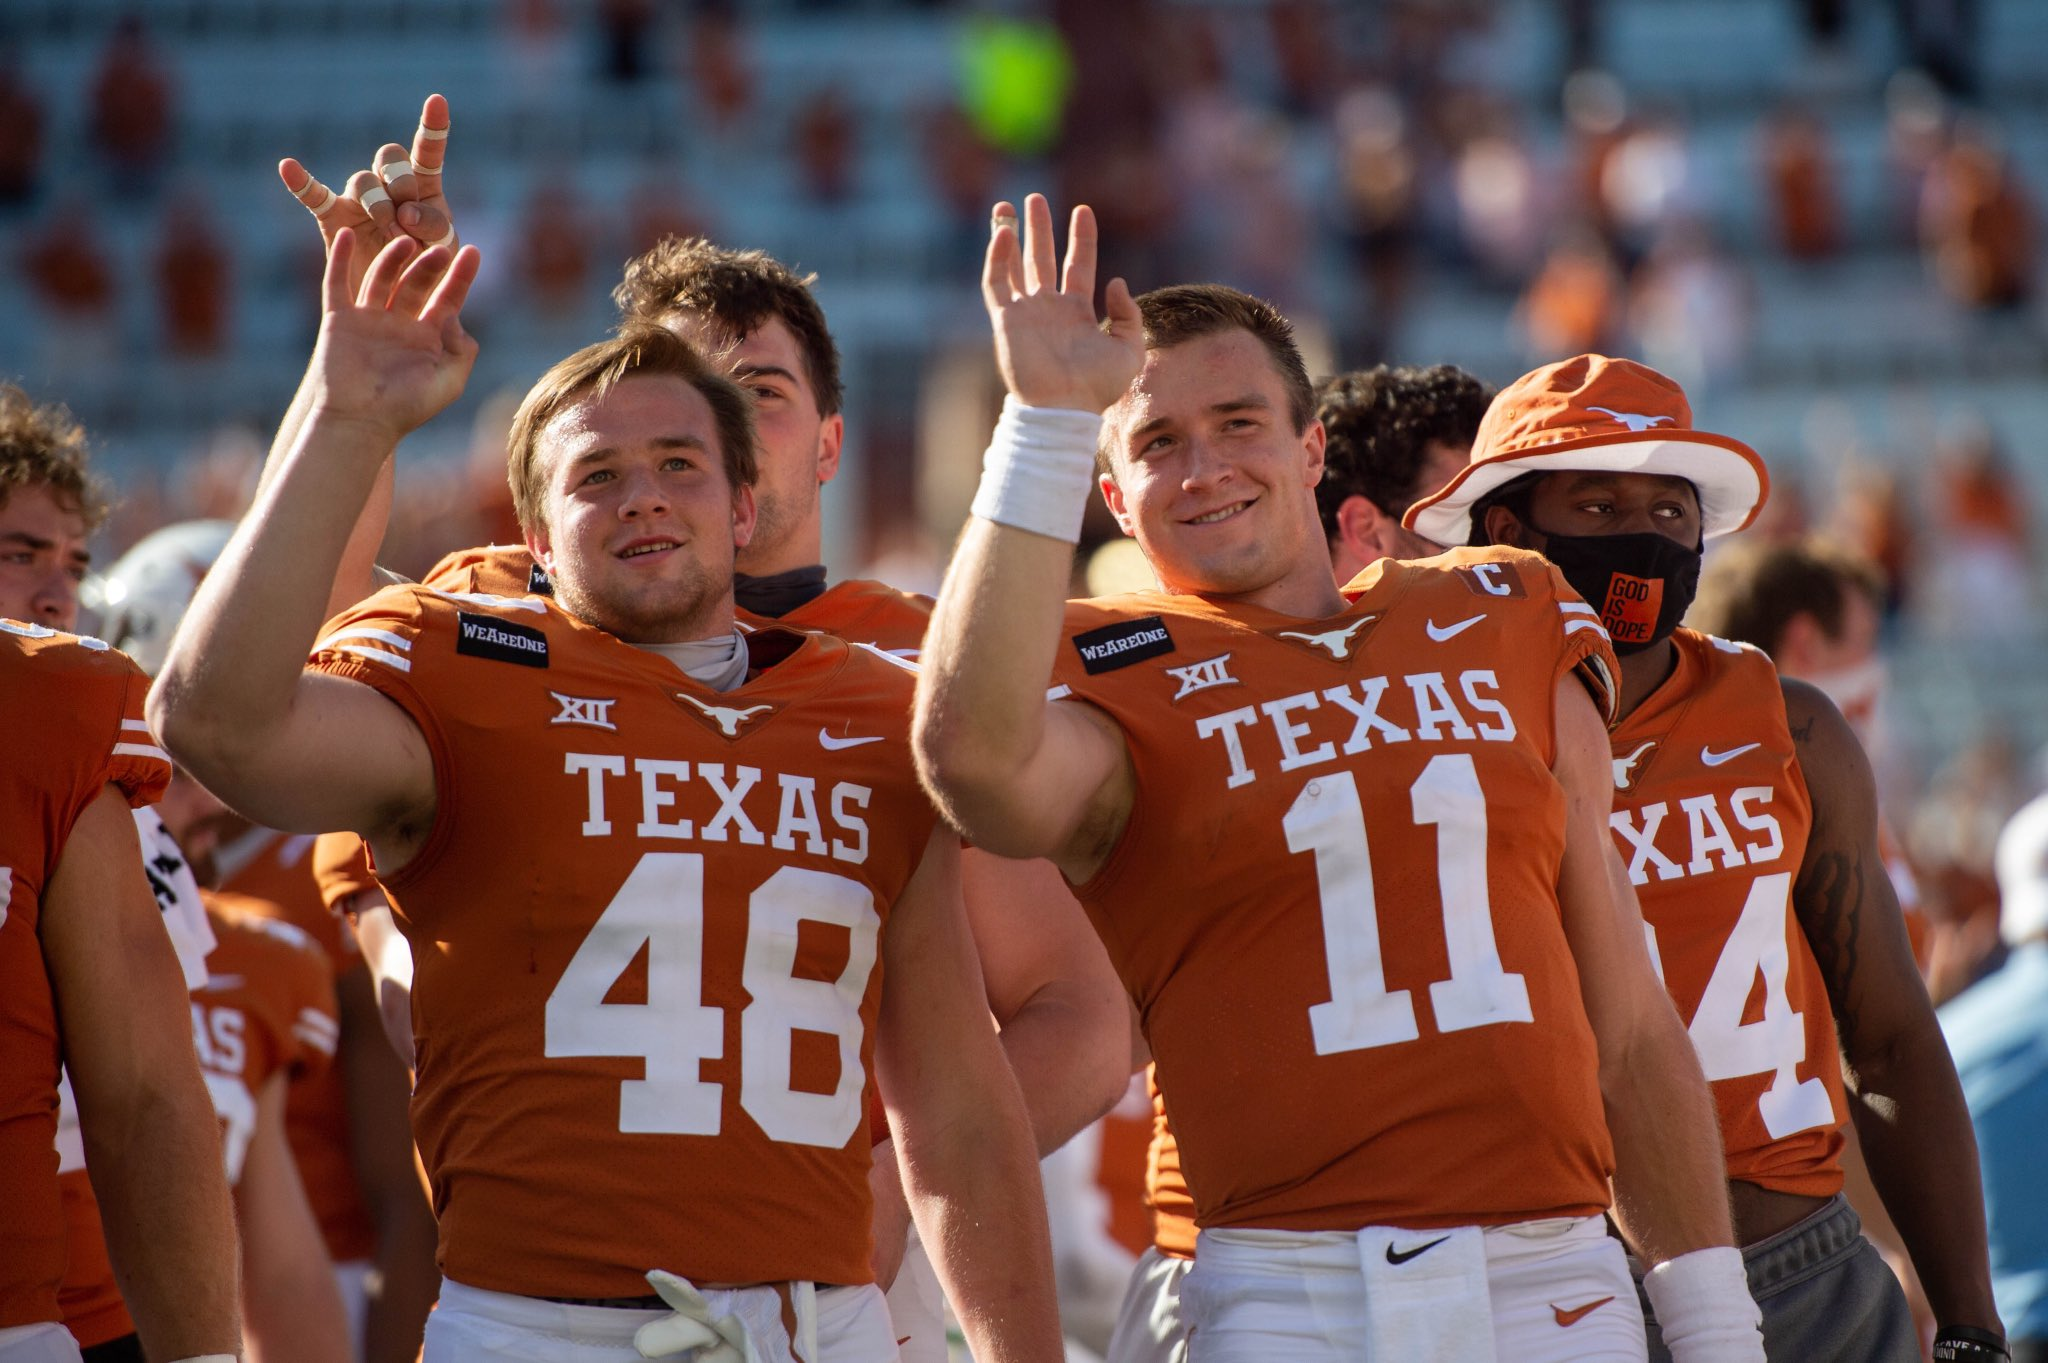 Jake Ehlinger, left, with his brother Sam Ehlinger, right (Courtesy Texas Athletics)